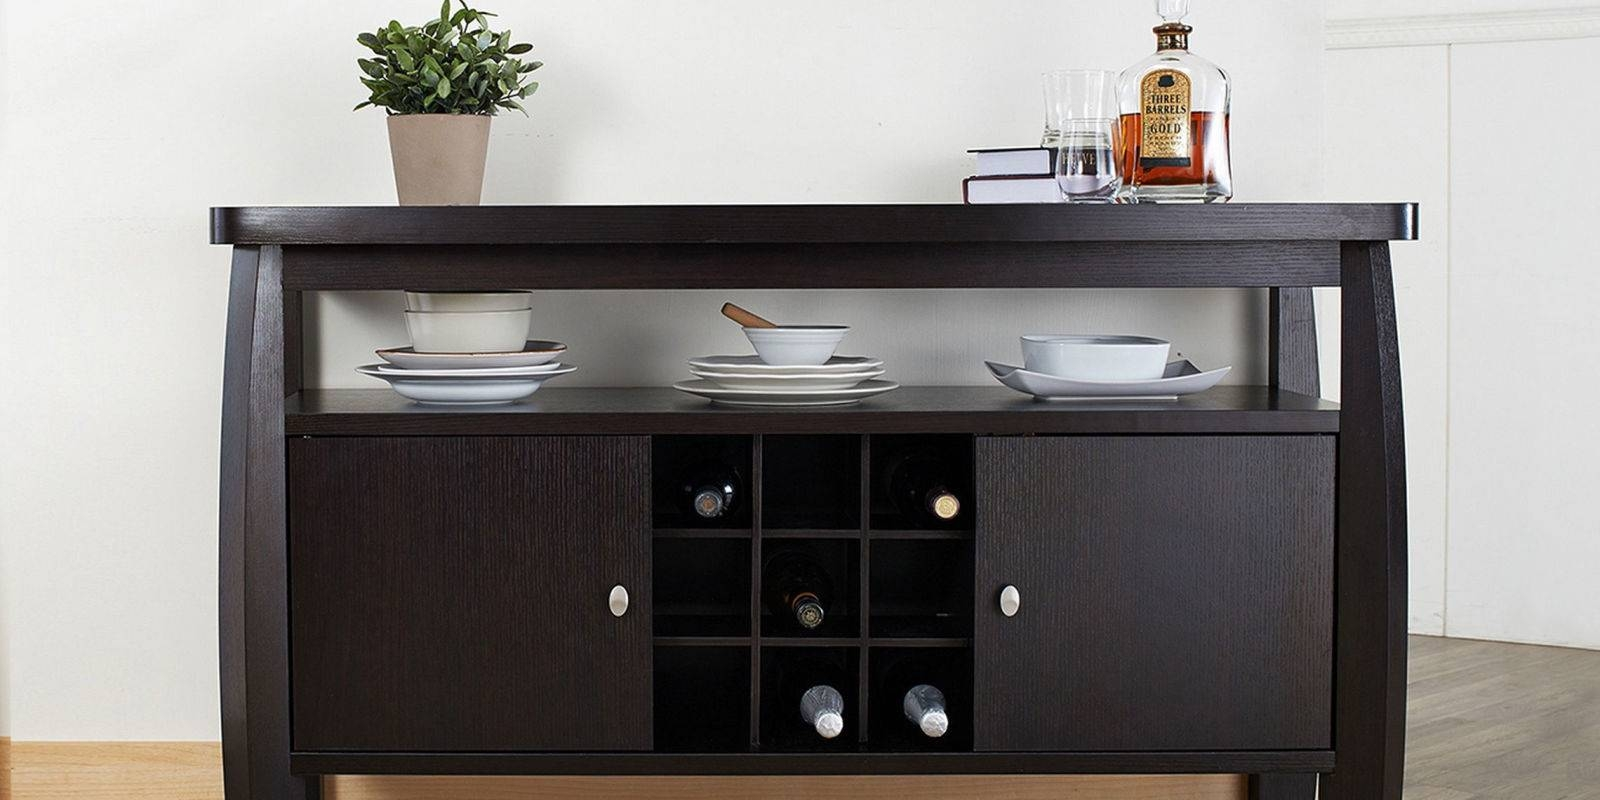 11 Best Sideboards And Buffets In 2018 – Reviews Of Sideboards Intended For Buffet Sideboards (Gallery 11 of 15)